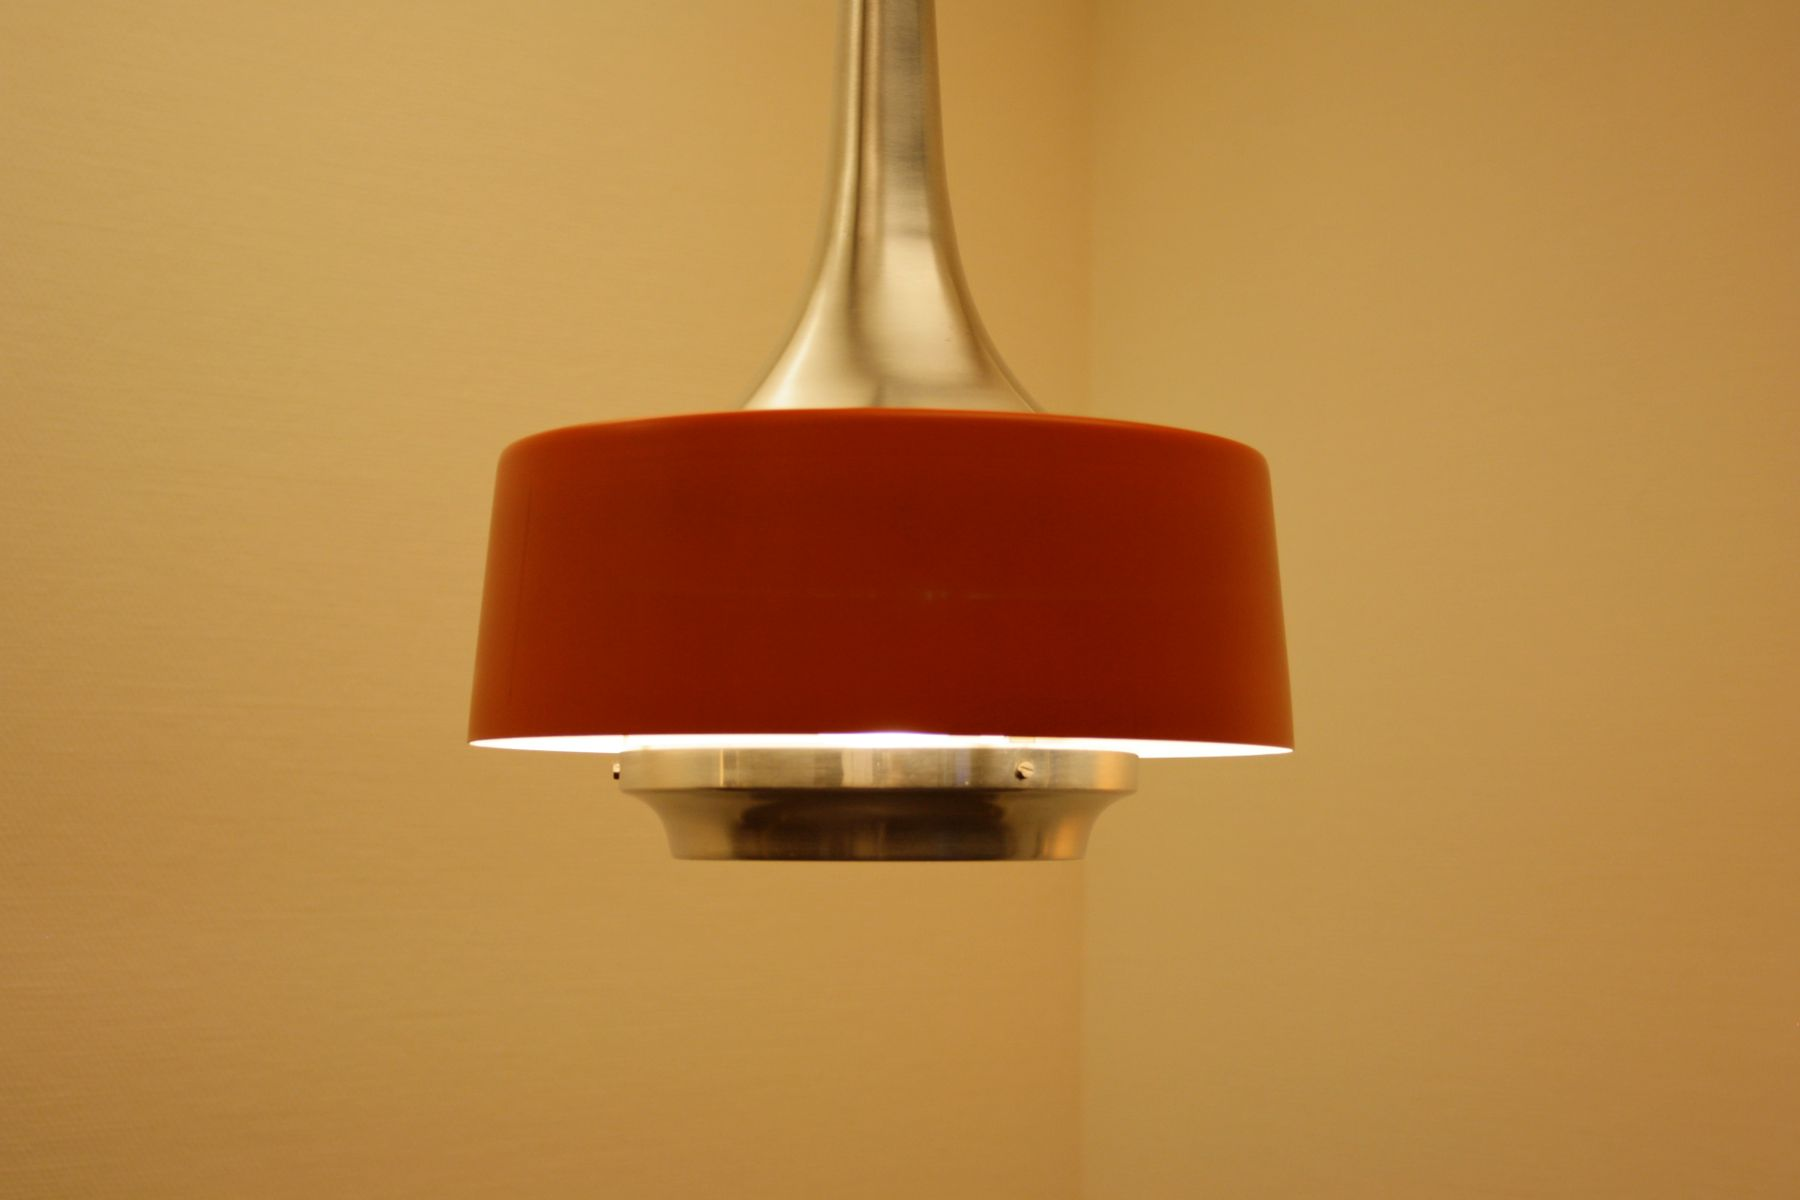 Vintage Dutch Pendant Light 1960s